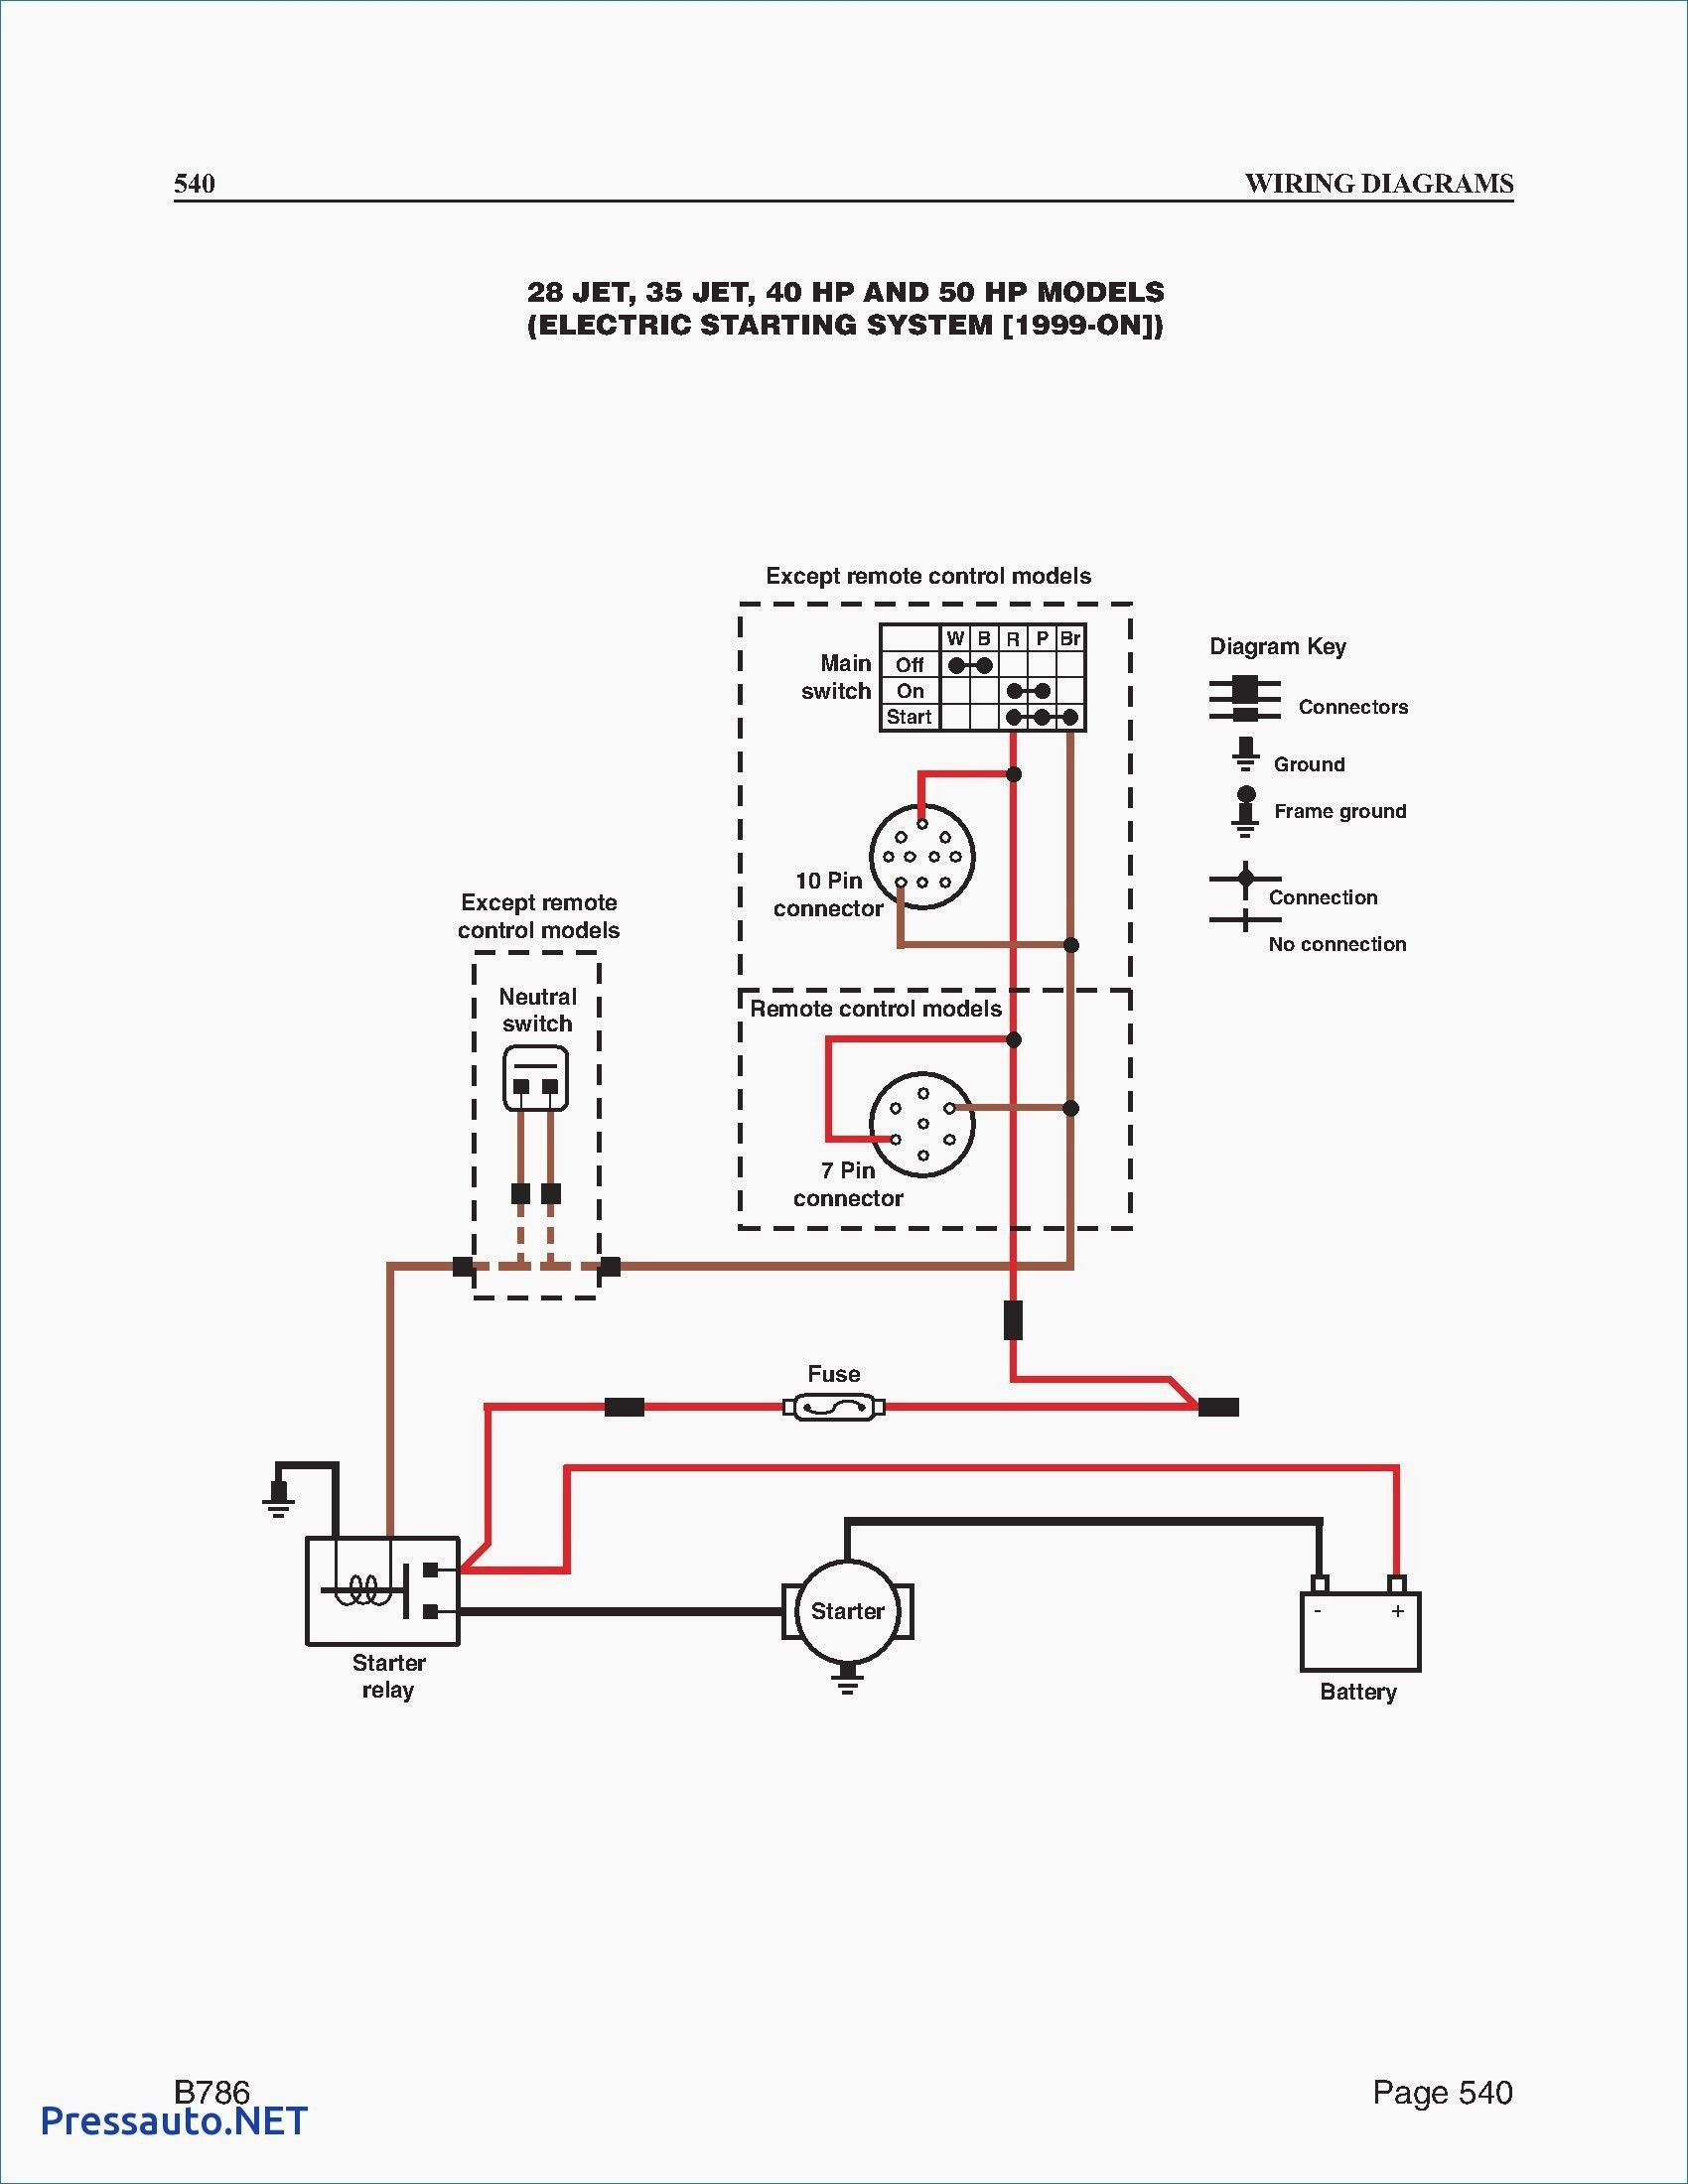 Unique Comcast Home Wiring Diagram #diagram #diagramsample